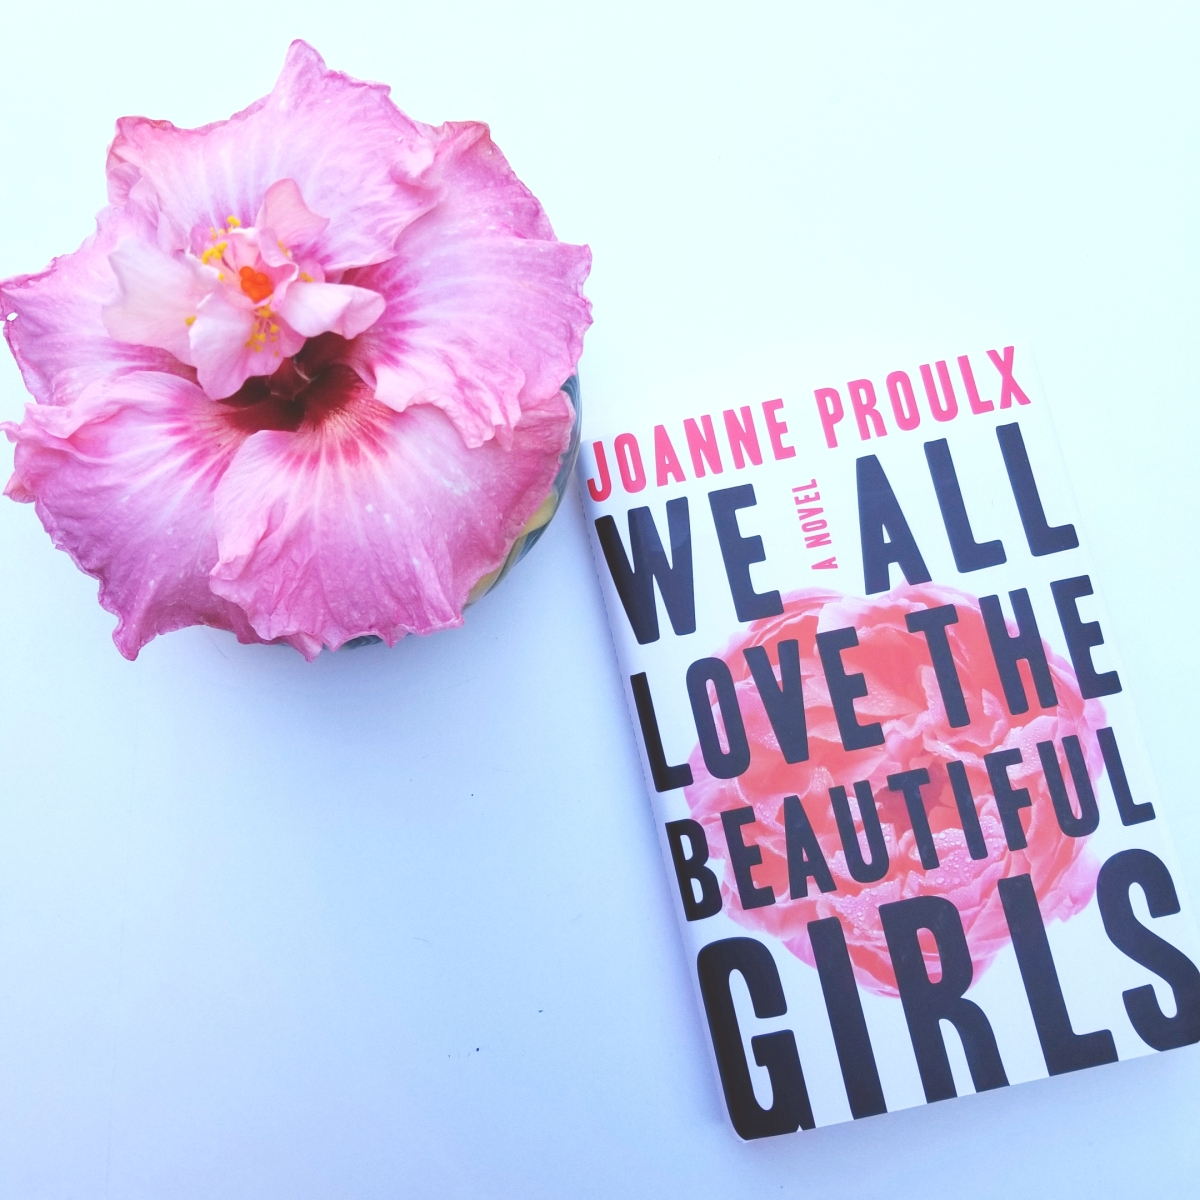 We All Love the Beautiful Girls by Joanne Proulx #bookreview #tarheelreader @joannevproulx @grandcentralpub #wealllovethebeautifulgirls #pubday #bookgiveaway